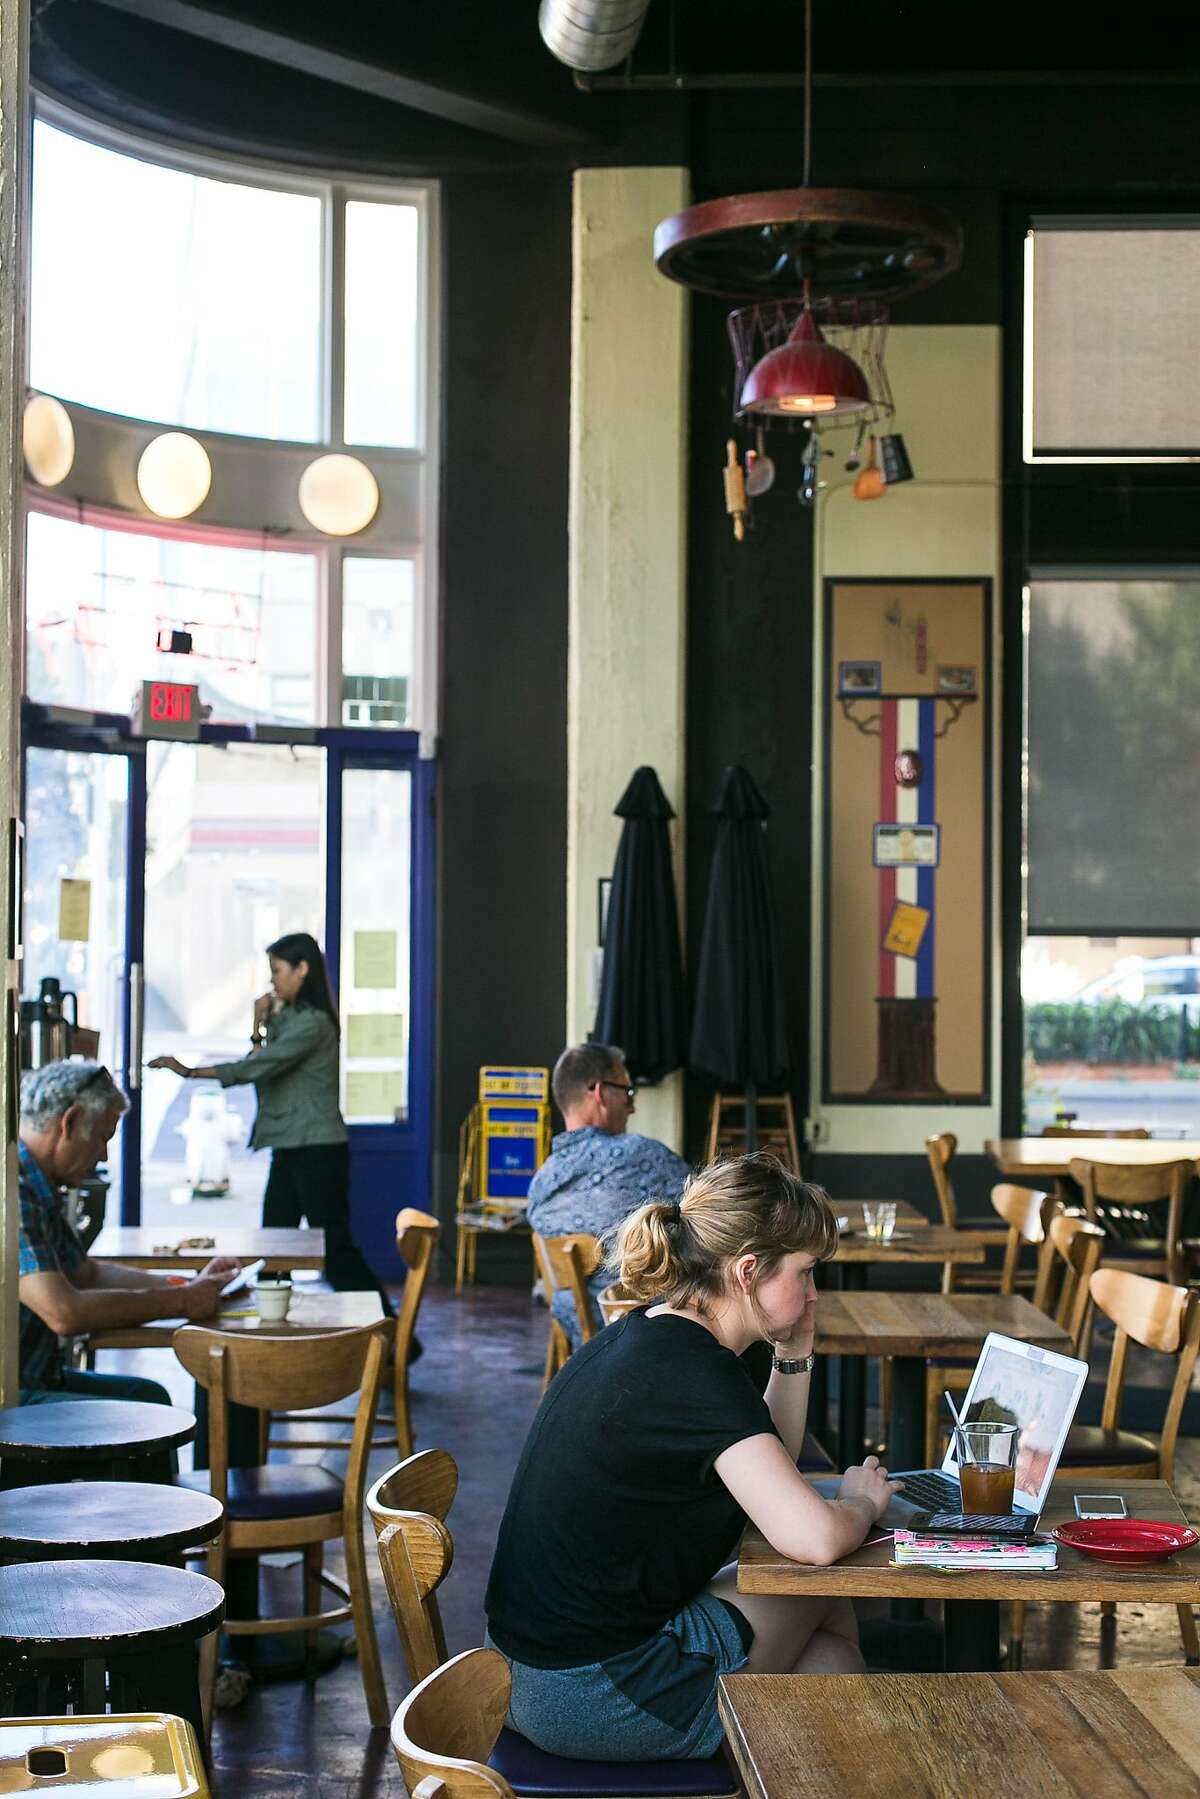 A quiet cafe, Sweet Bar Bakery, offers pastries, tea, coffee and more as part of the Hive's new food establishments in Oakland.